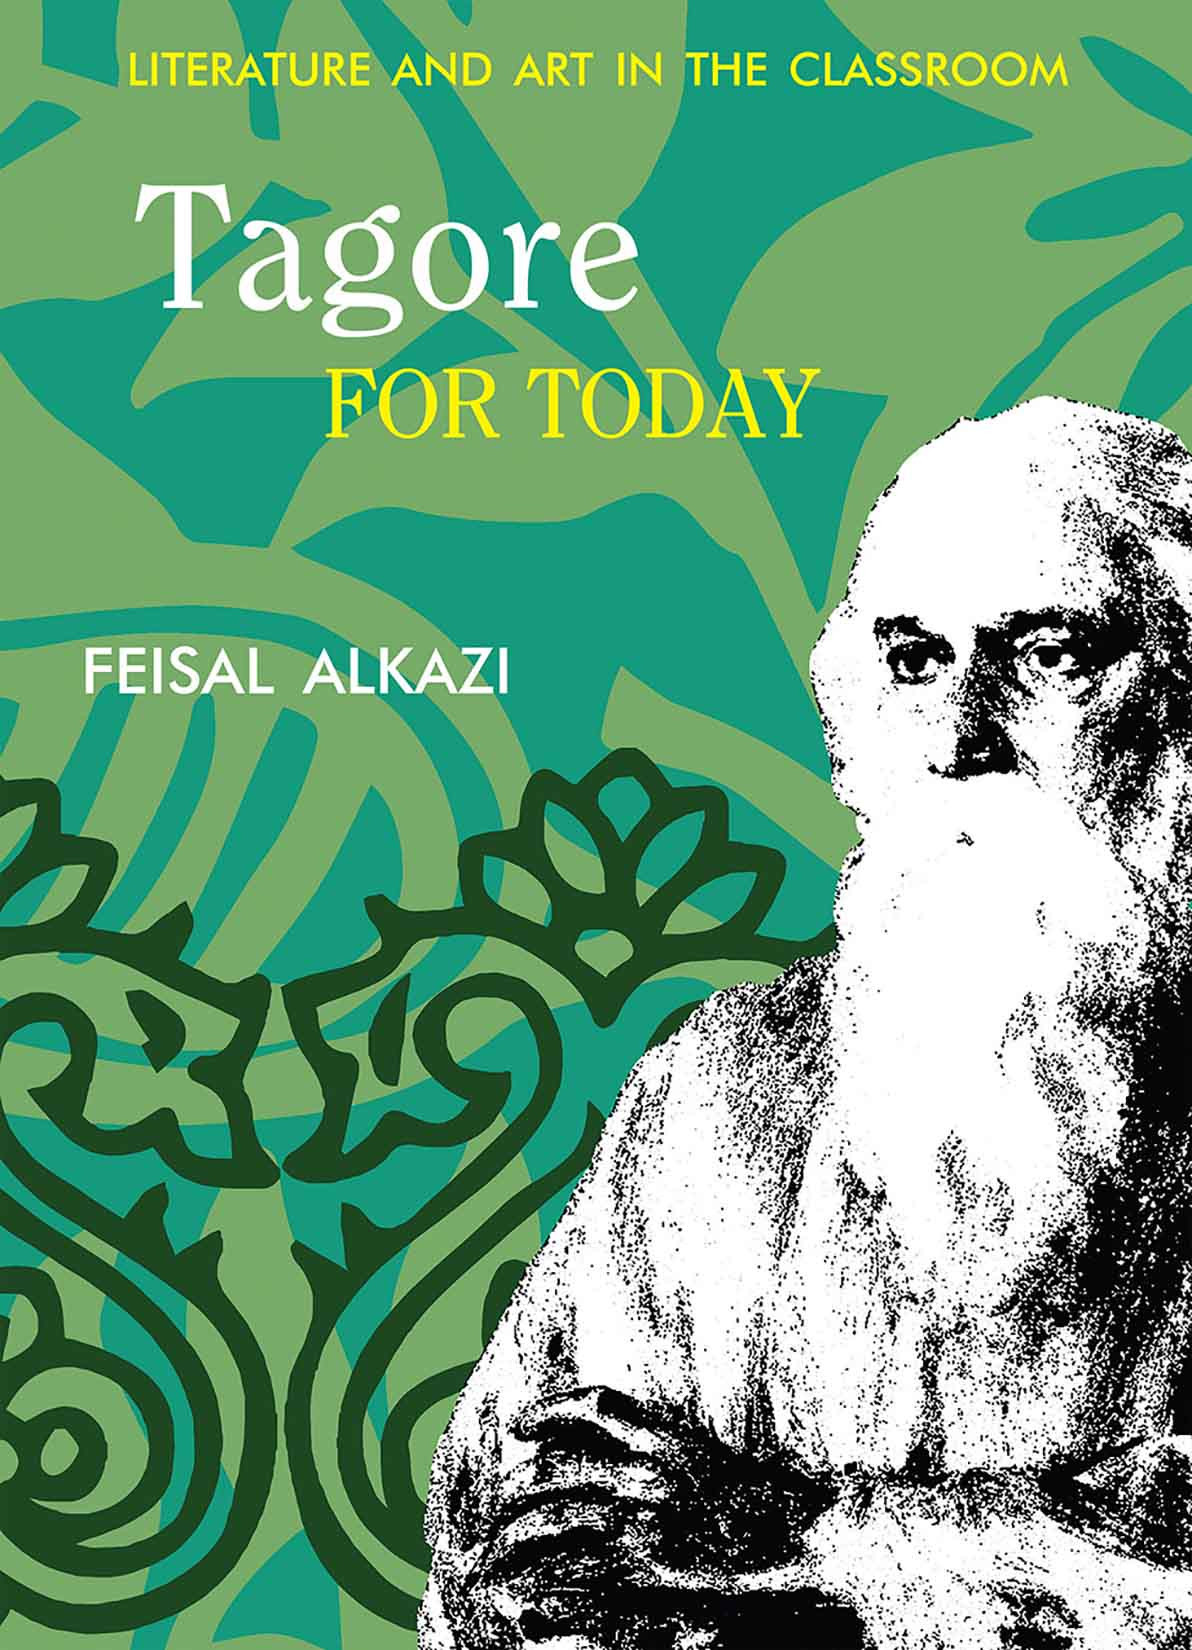 Tagore for Today: Literature and Art in the Classroom - e-book